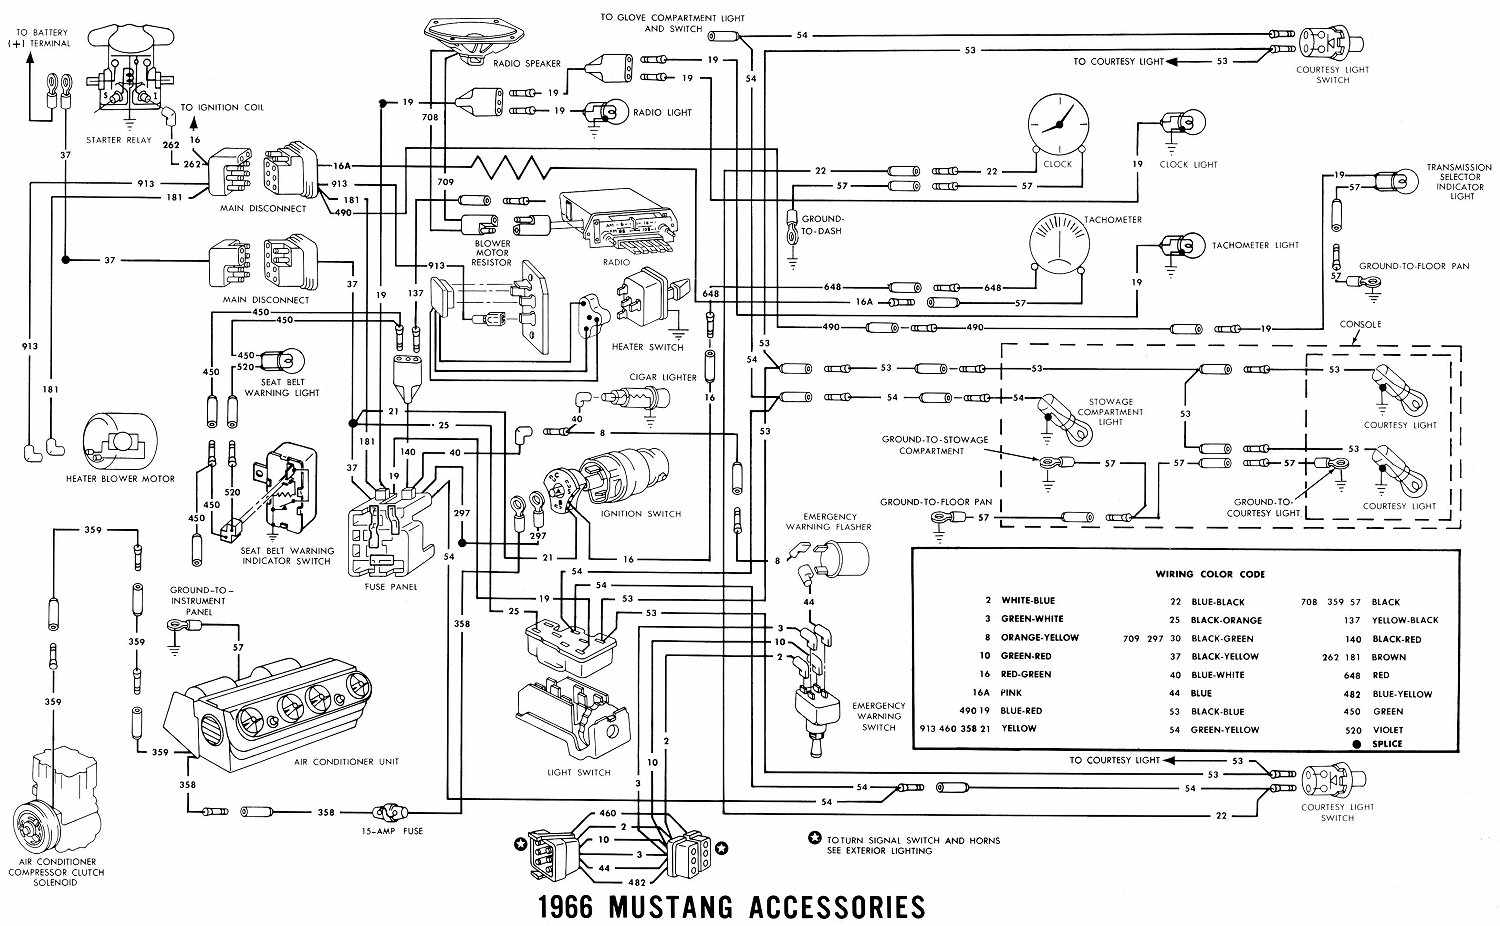 1949 chevy wiring diagram 1949 plymouth wiring diagram #2